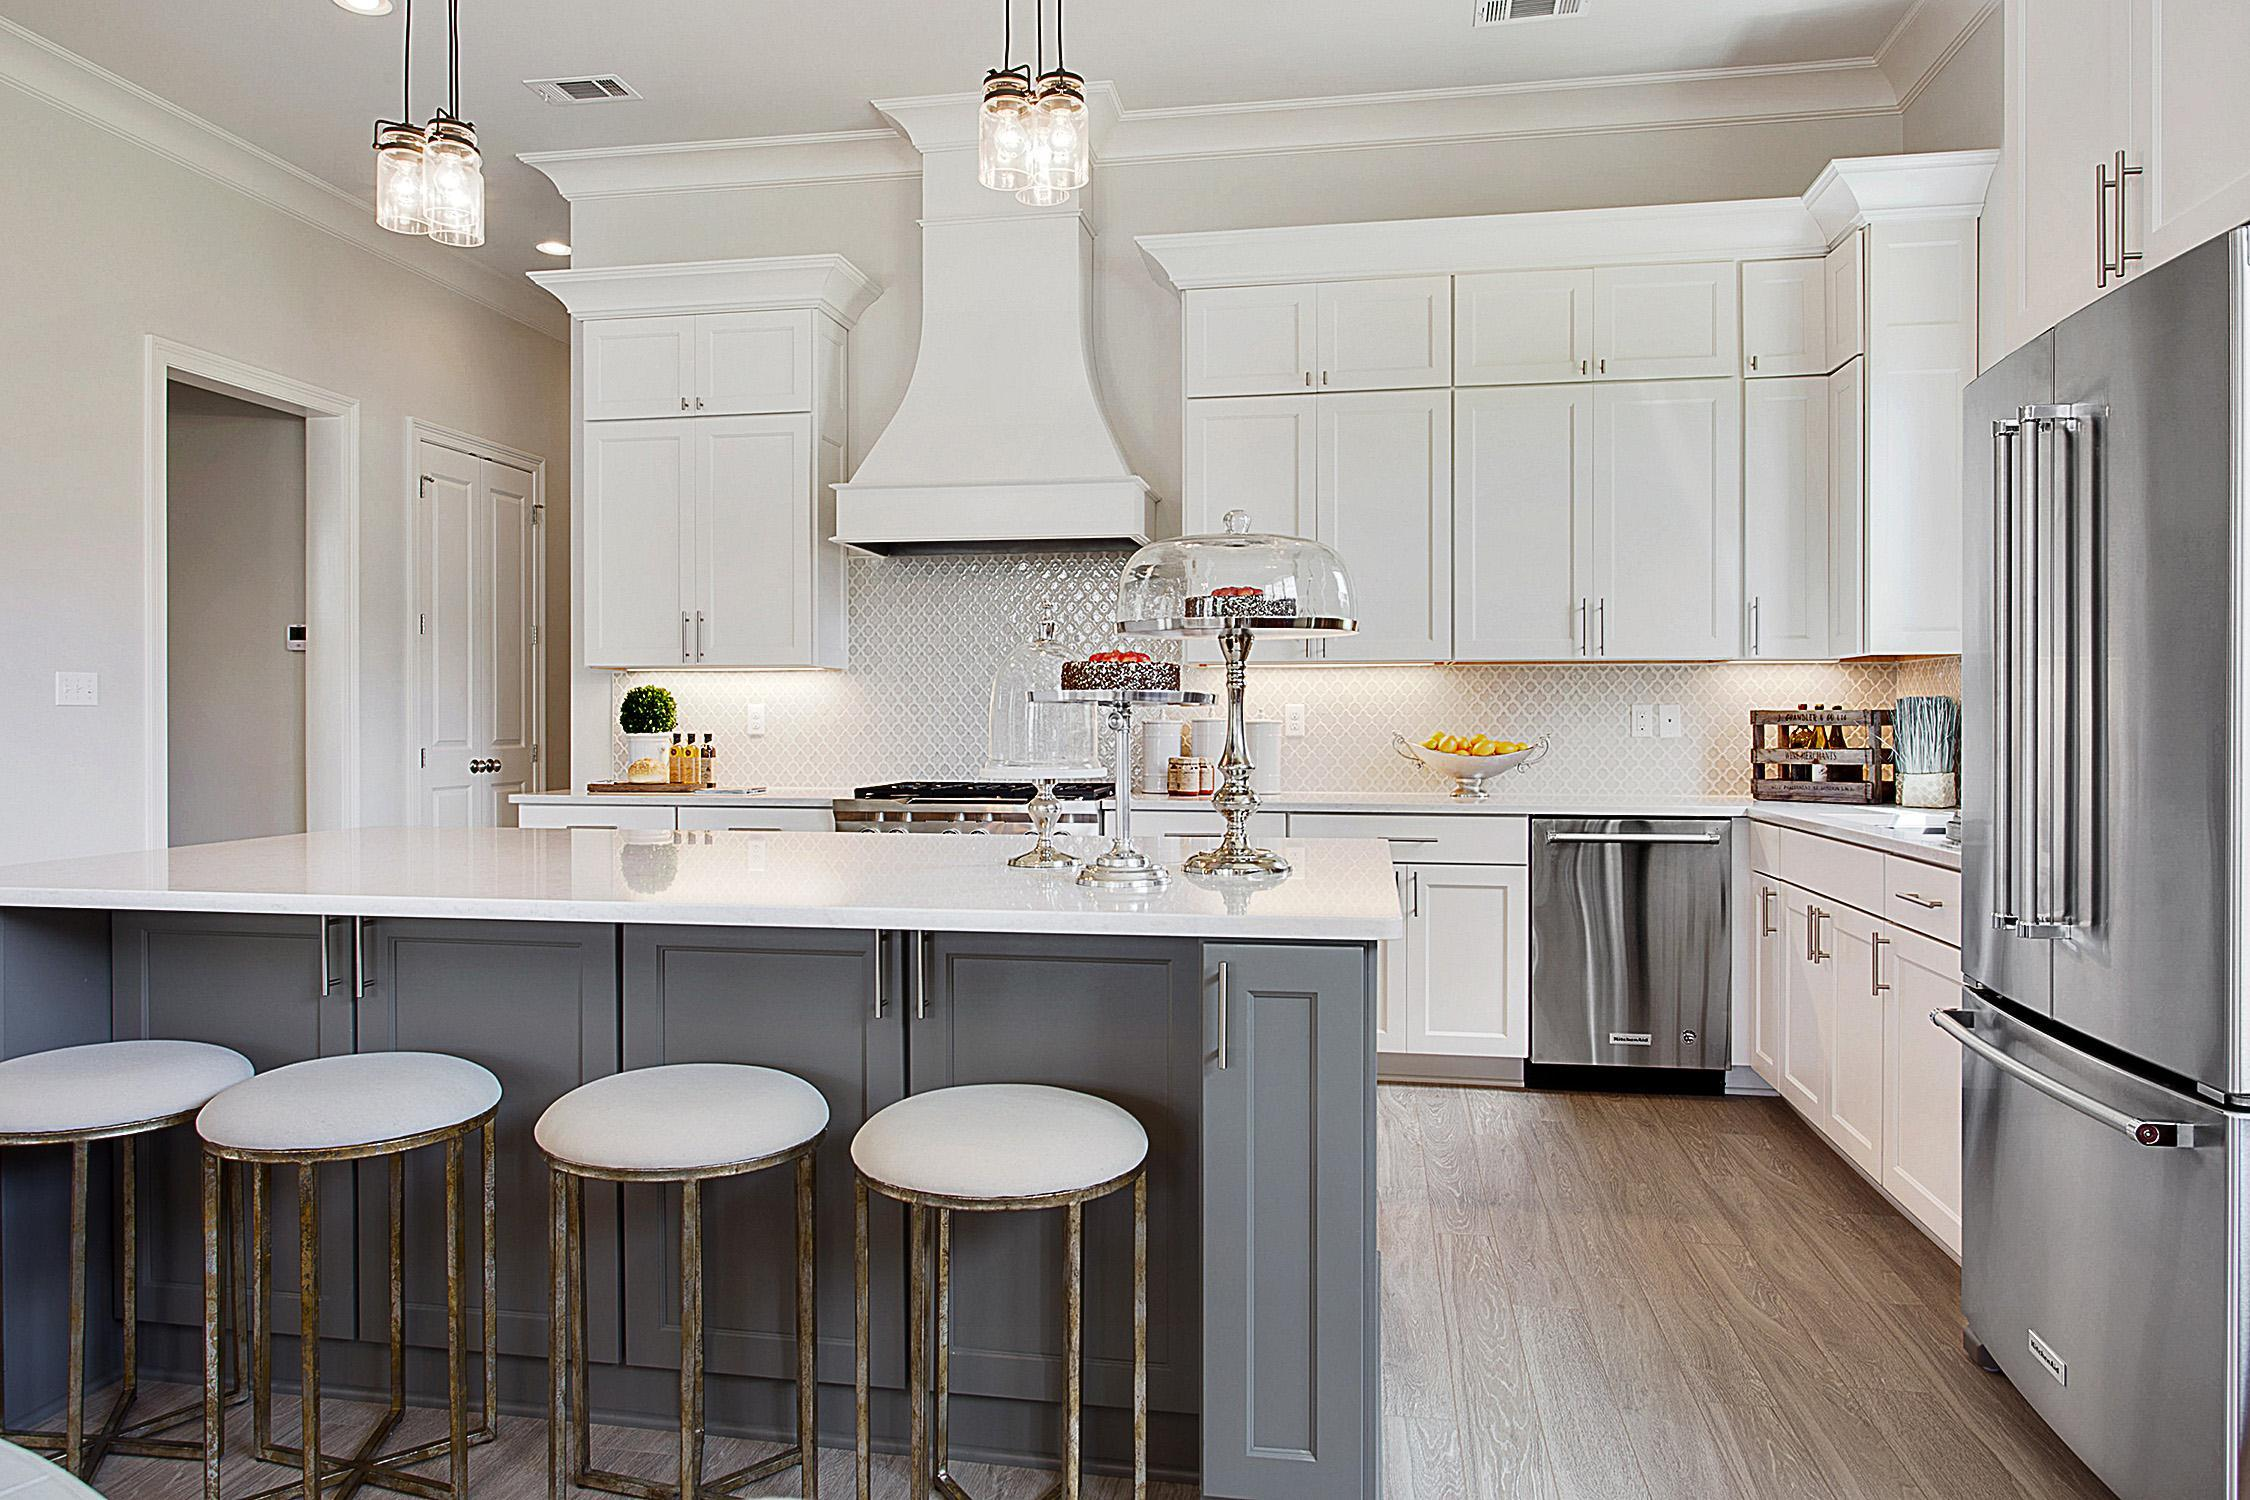 Kitchen featured in the Bachman (Money Hill Courtyard) By Highland Homes in New Orleans, LA